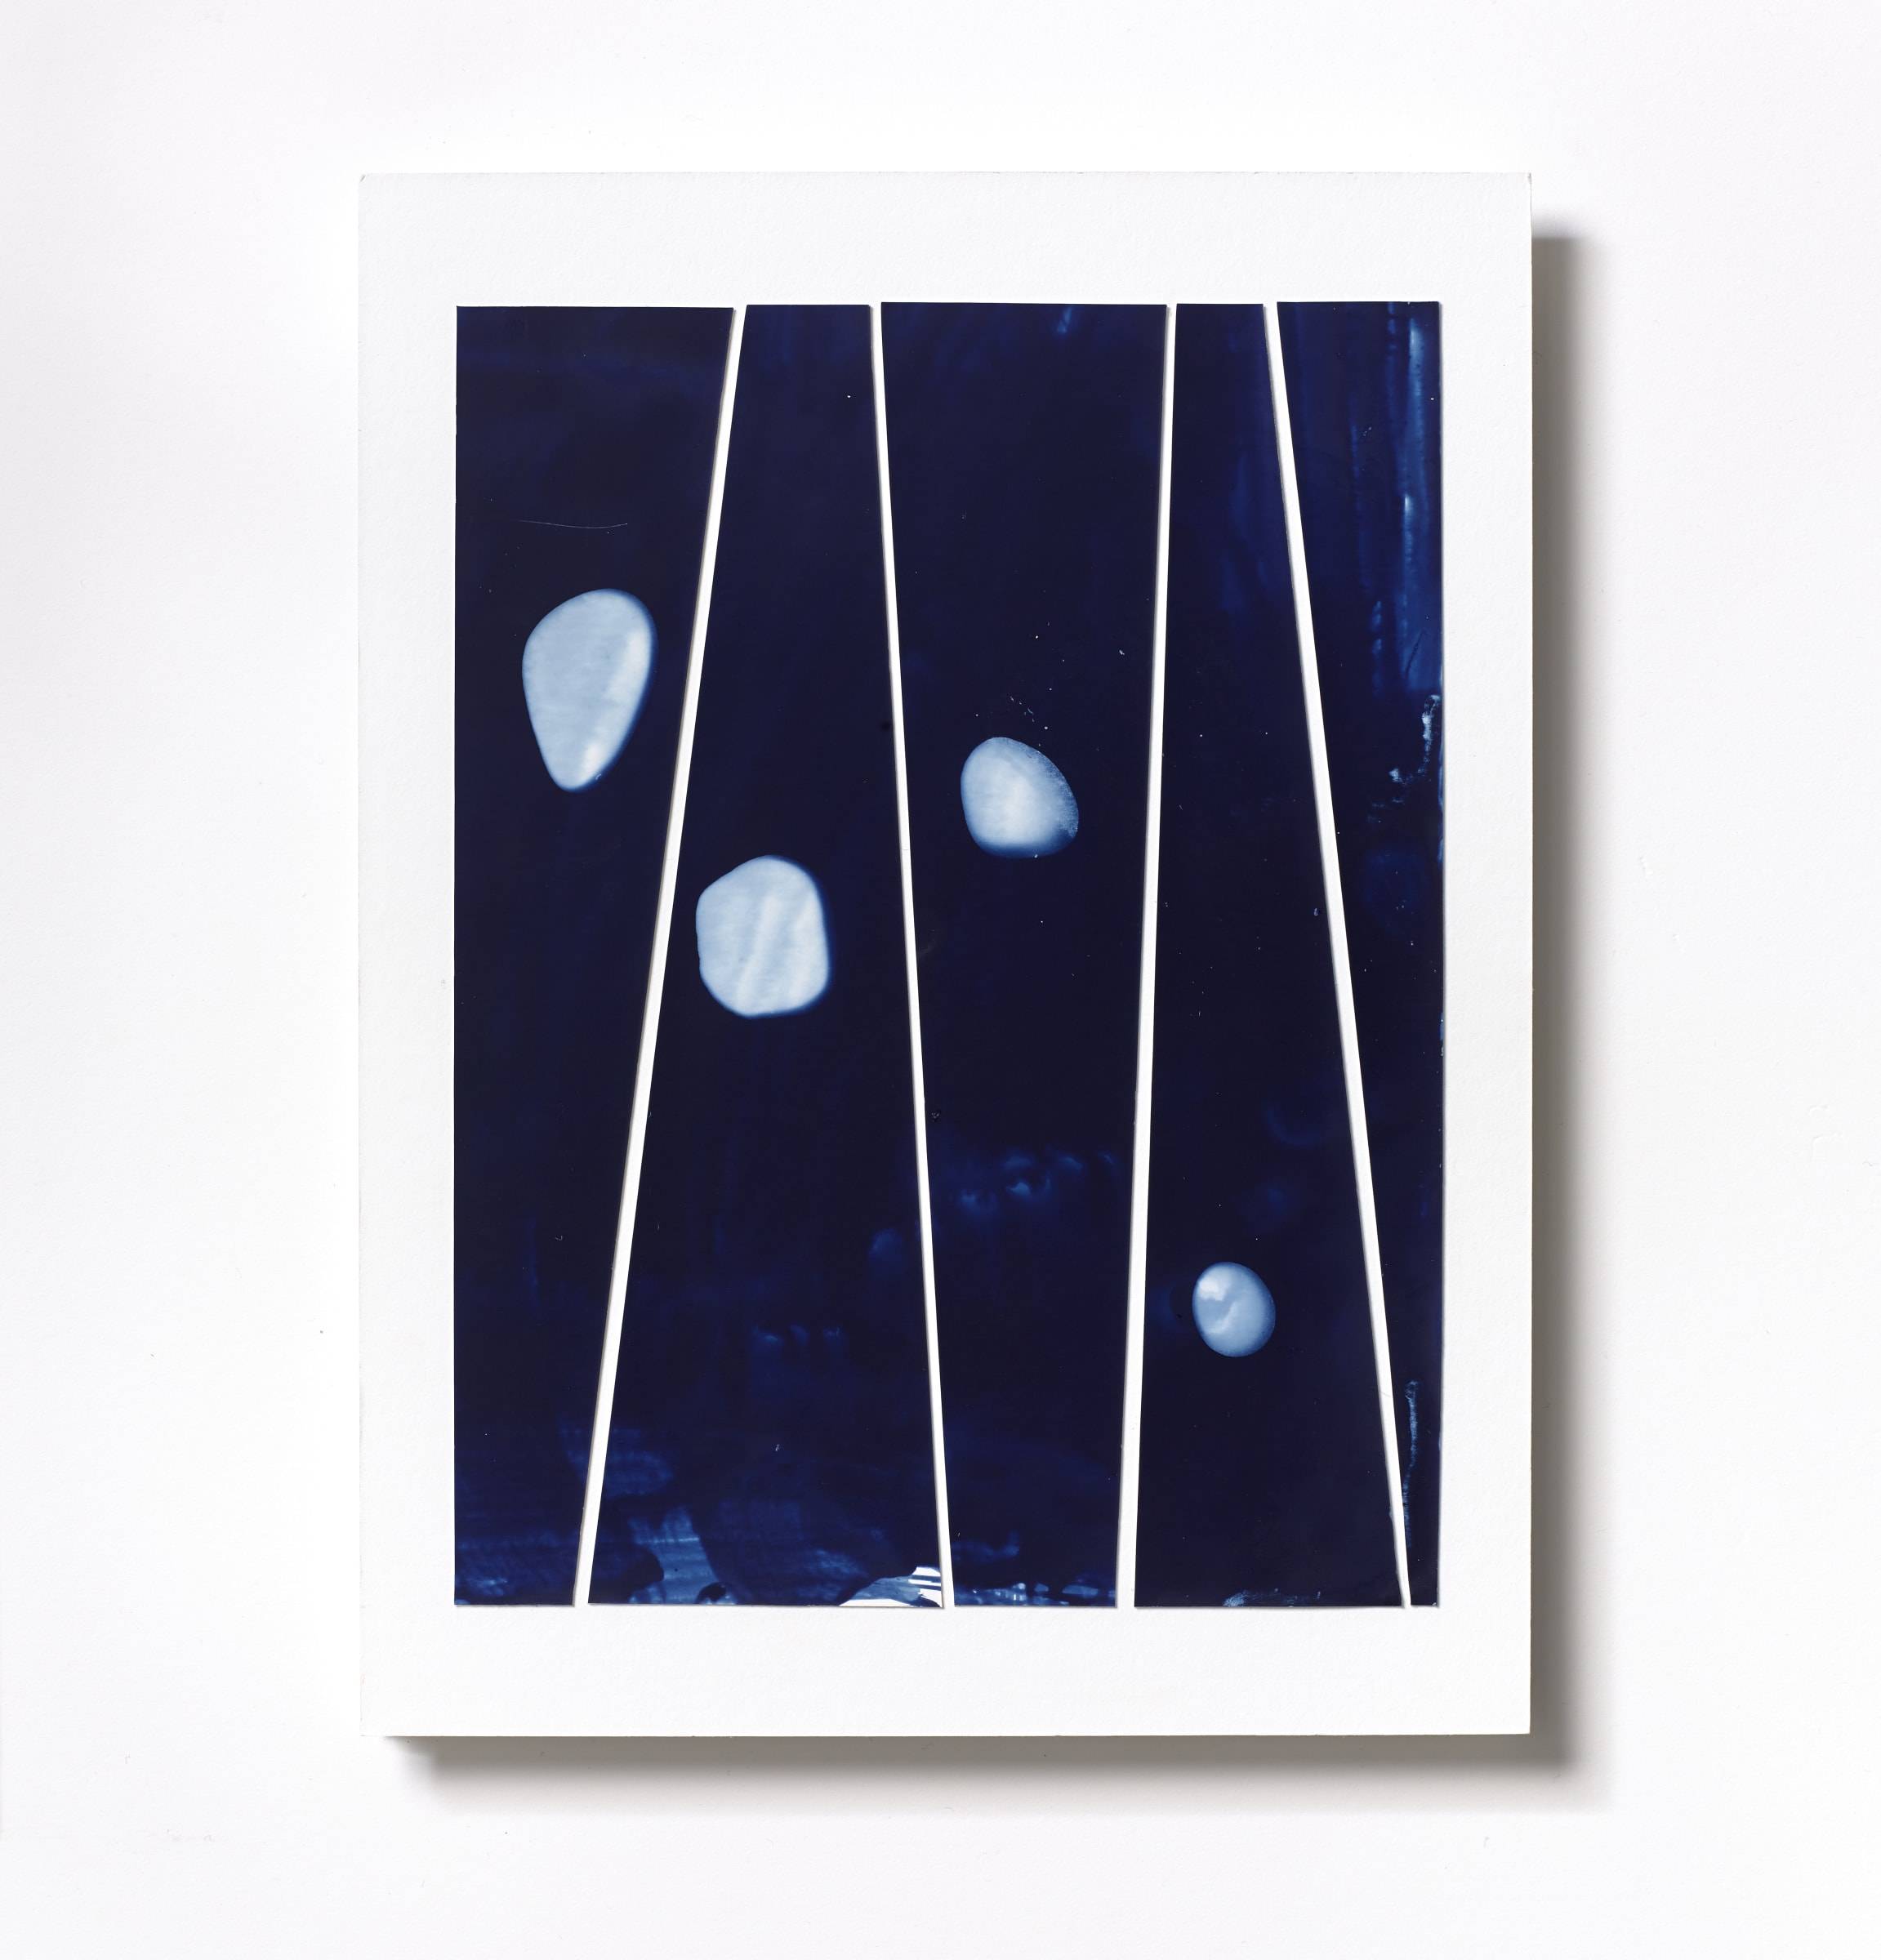 "<span class=""link fancybox-details-link""><a href=""/content/feature/118/artworks559/"">View Detail Page</a></span><div class=""medium"">Cyanotype Collage of five hand-painted 9 7/8"" x 1/4"" cyanotype photograms on a 12 x 9 inch 8-ply museum board.<br /> Print only<br /> Unique</div> <div class=""dimensions"">30.5 x 22.9 cm<br /> 12 x 9 in</div>"